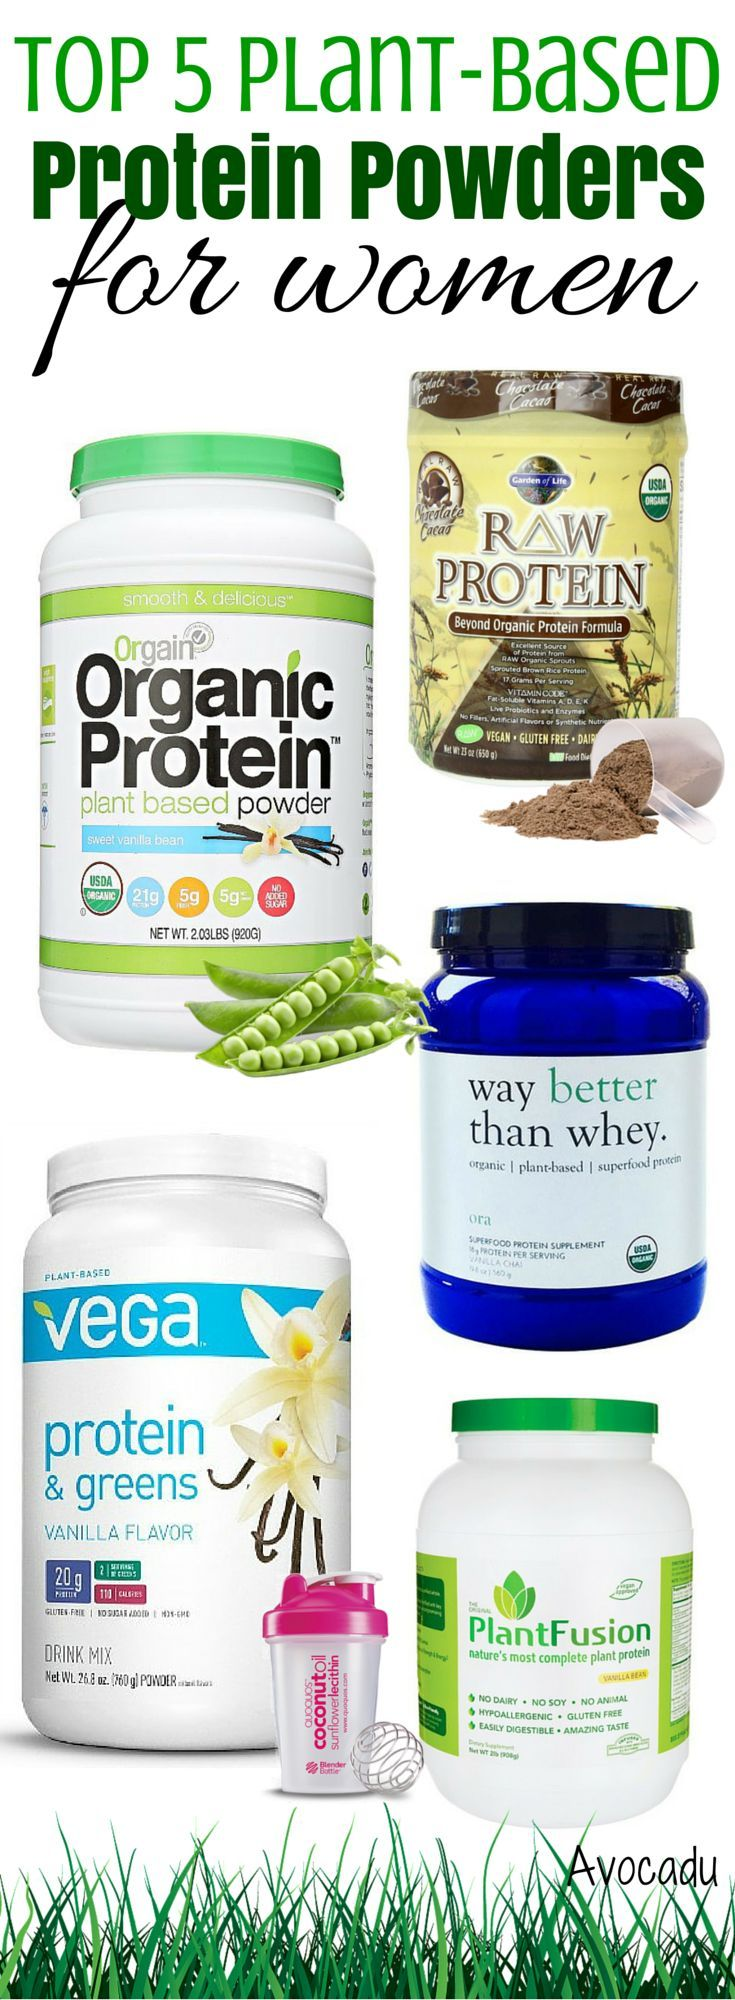 Protein is one of the most important parts of a healthy diet and can also help you lose weight! These are the best vegan and vegetarian protein powders! http://avocadu.com/top-5-plant-based-protein-powders-for-women/